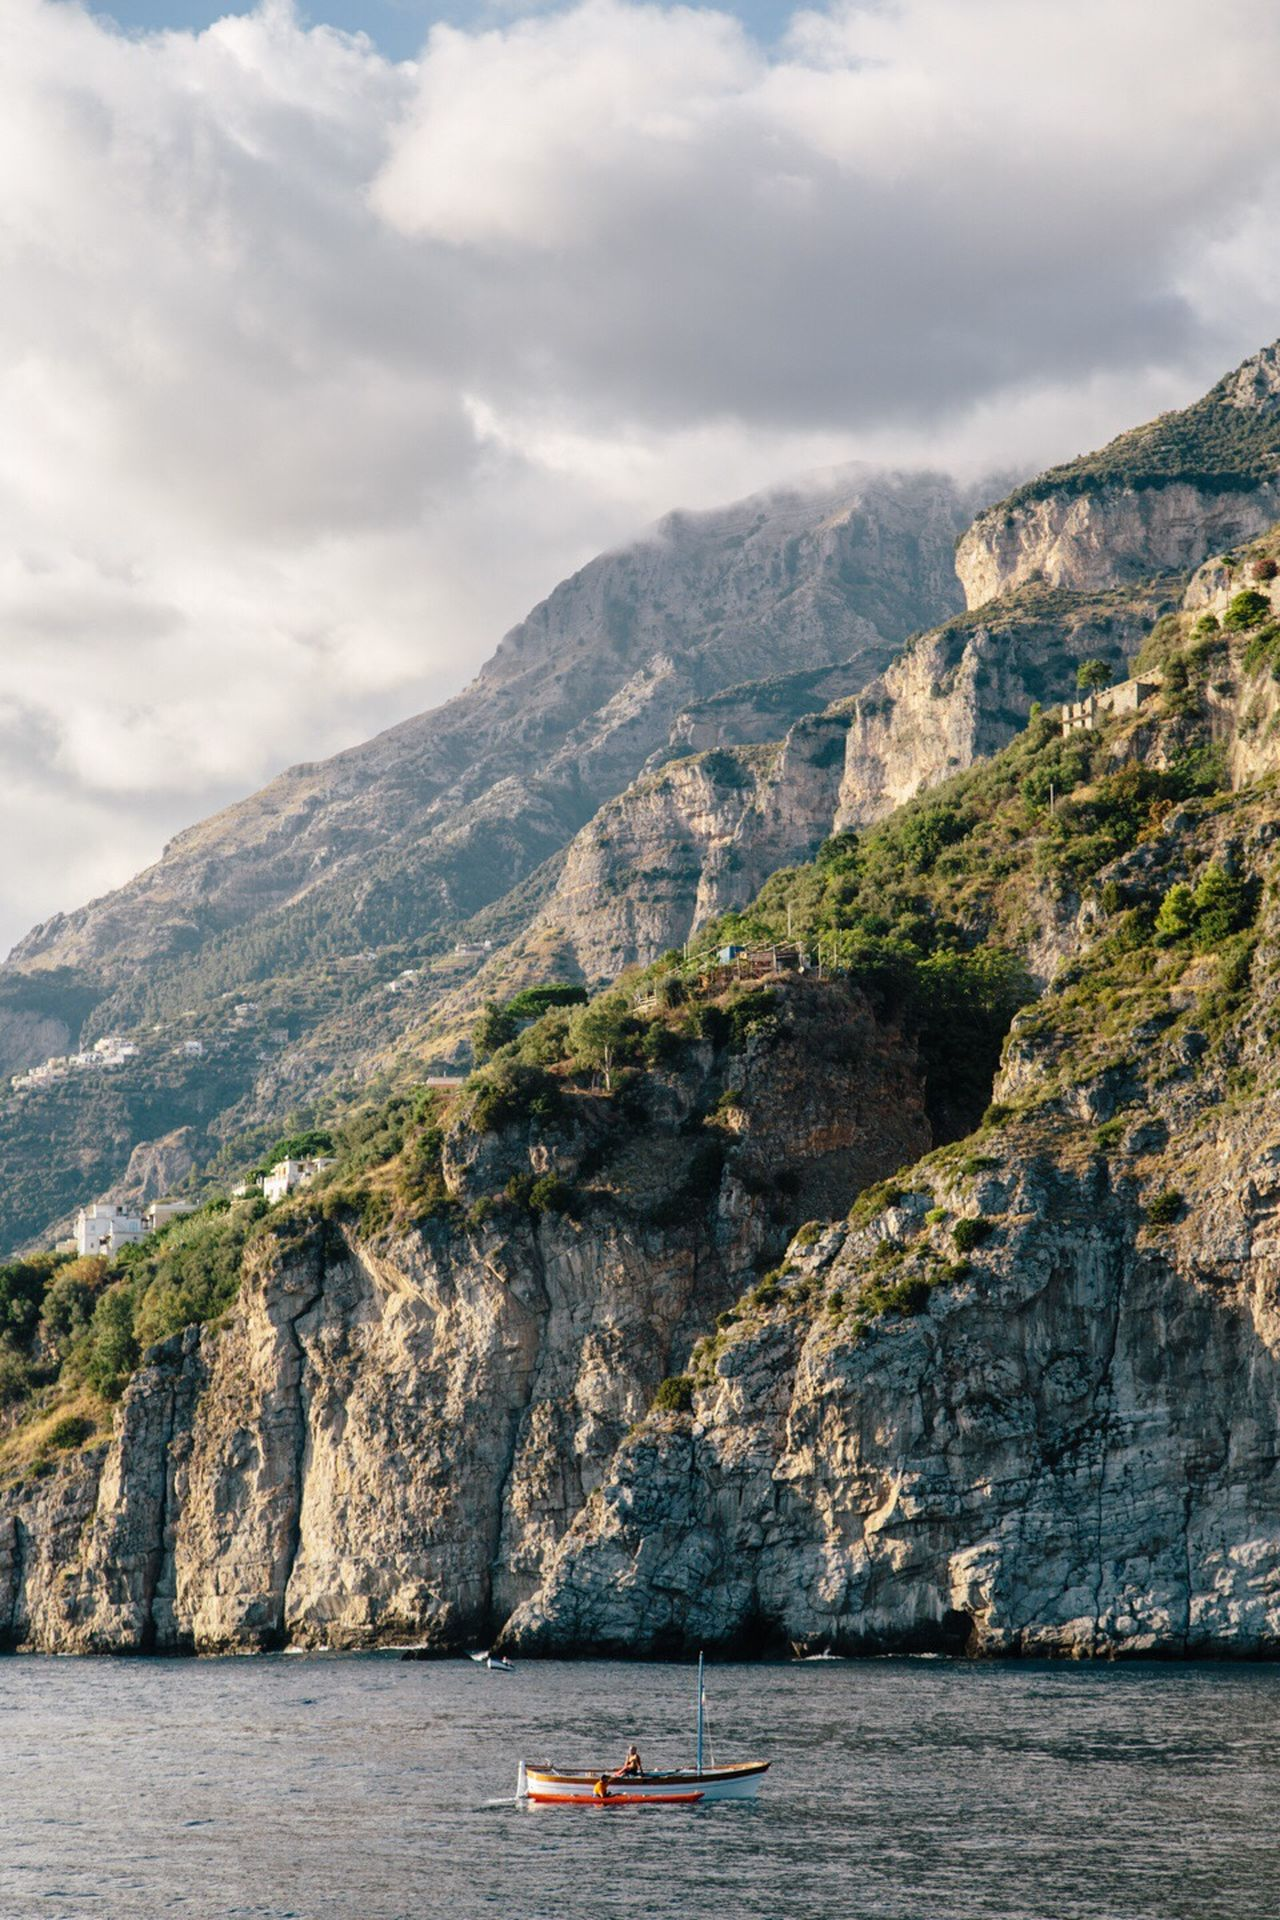 Scenic view of cliff against cloudy sky